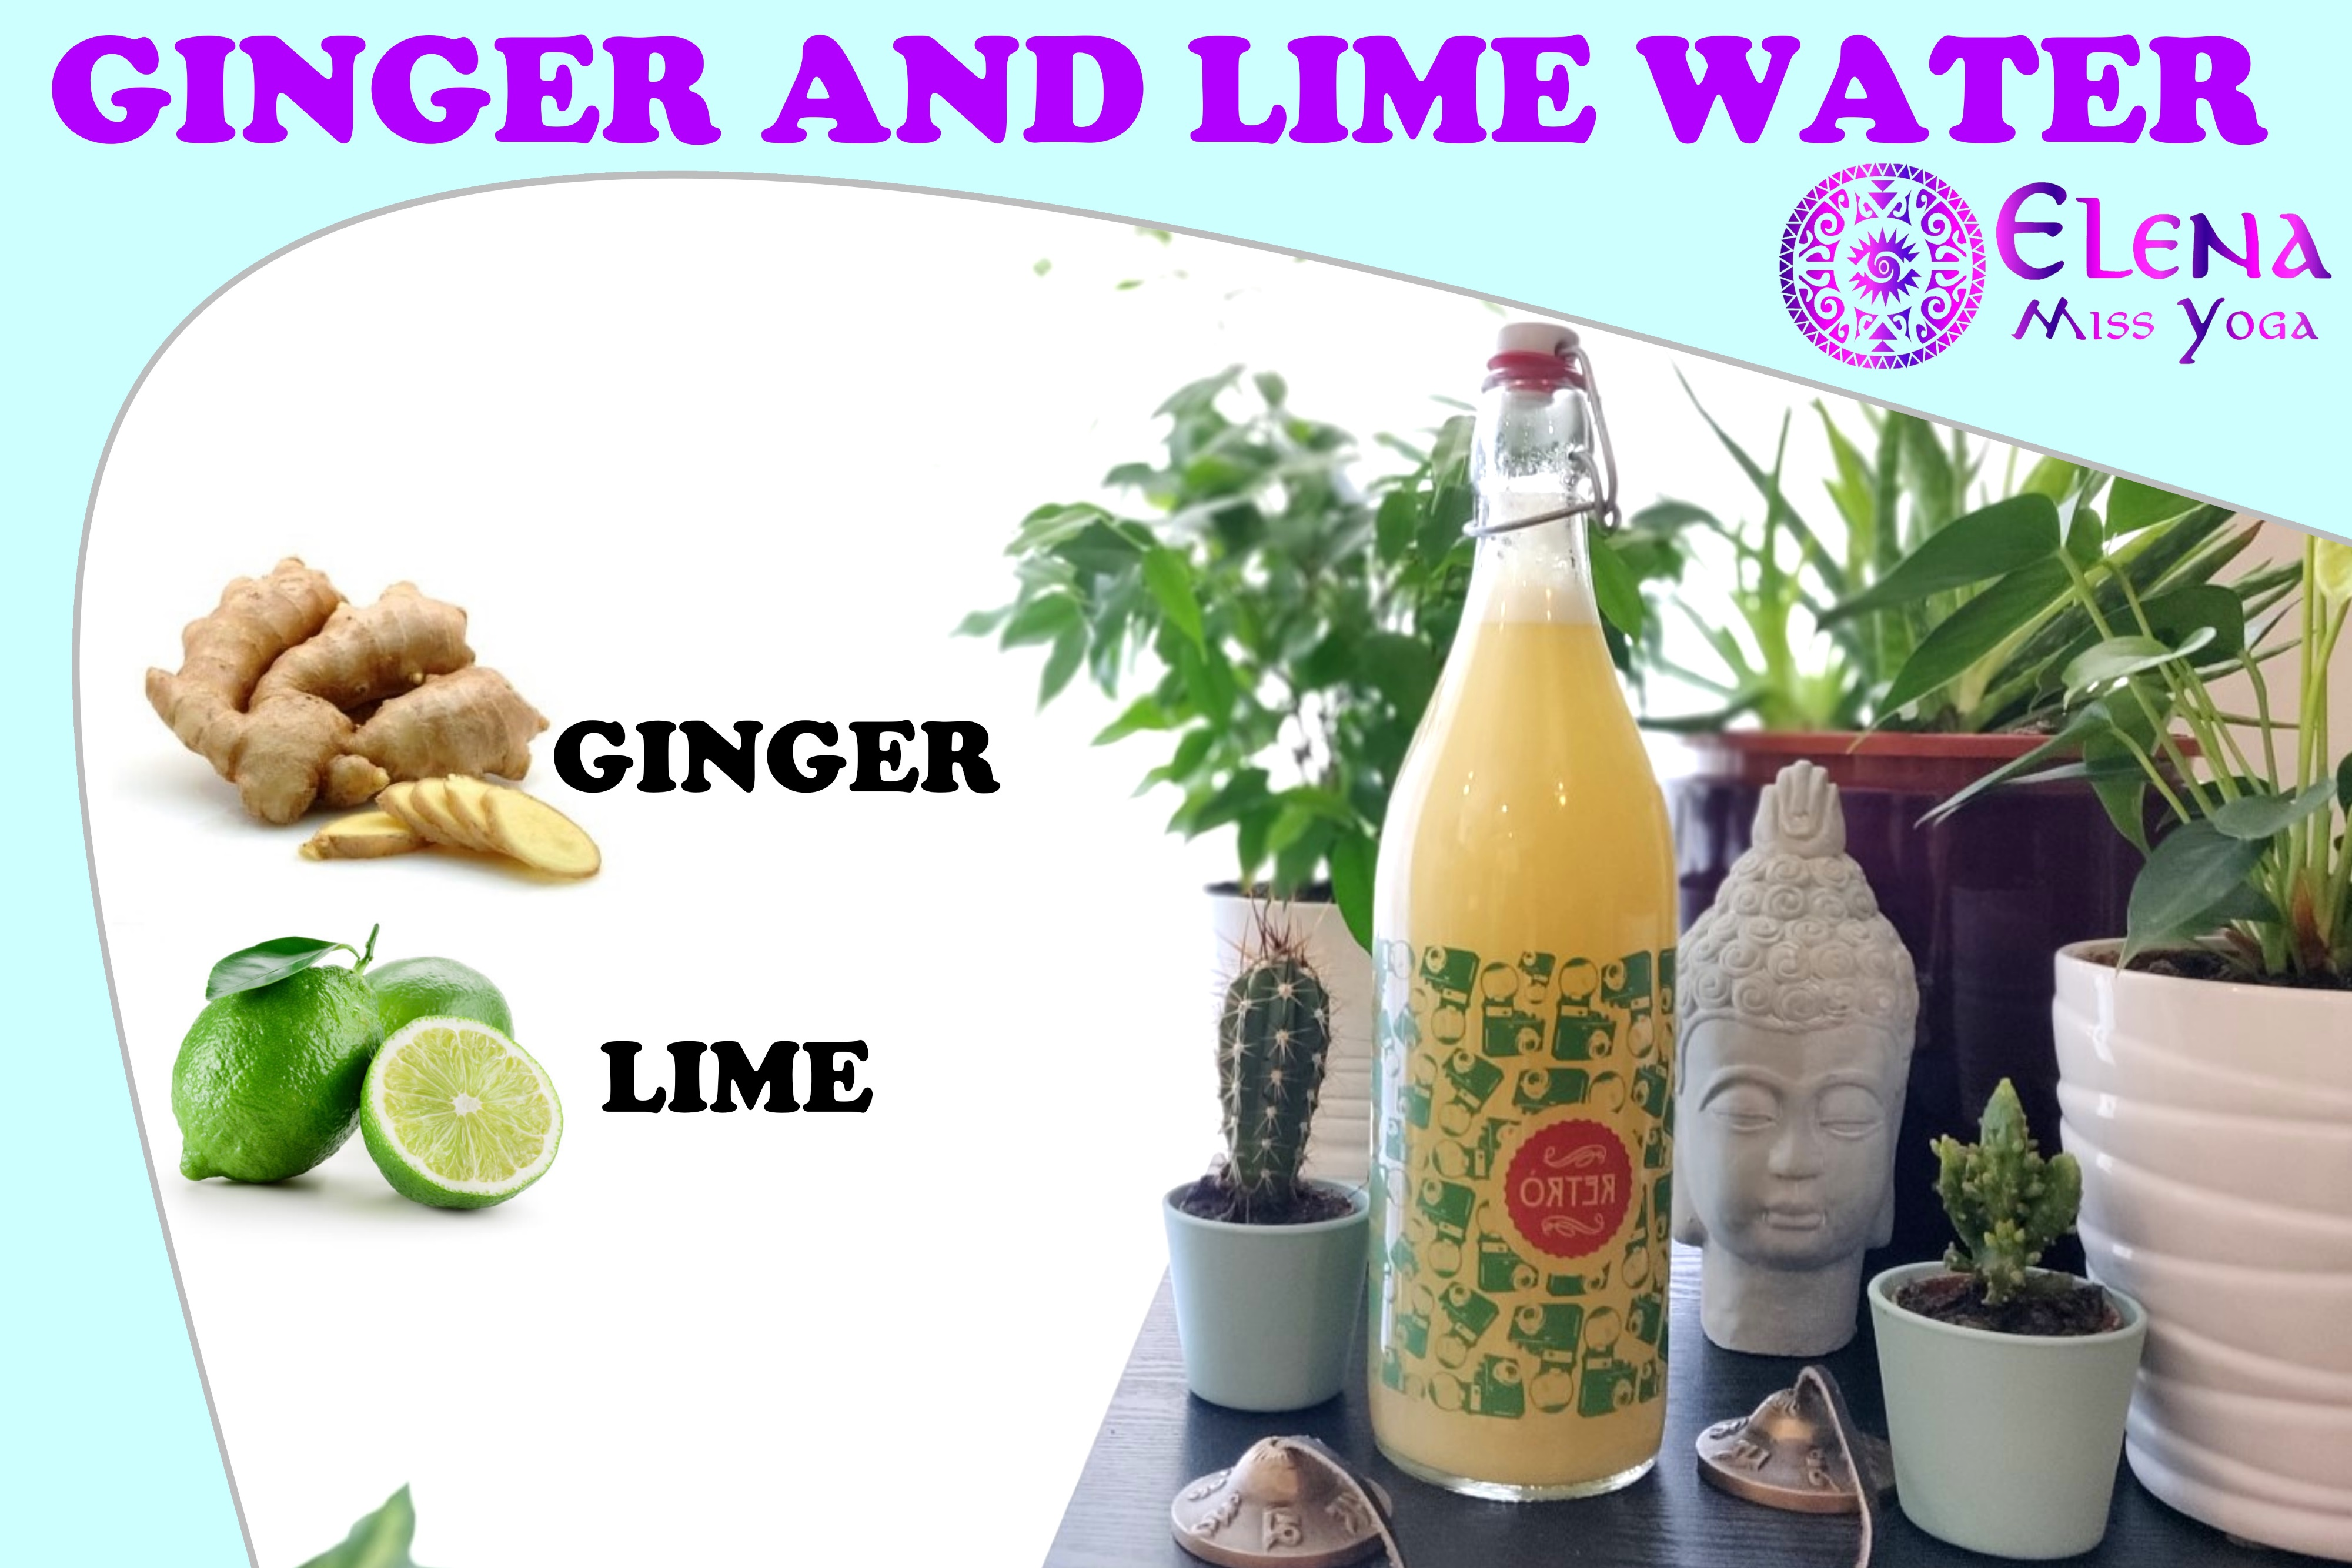 EASY PEASY GINGER SQUEEZING - HOMEMADE GINGER AND LIME WATER